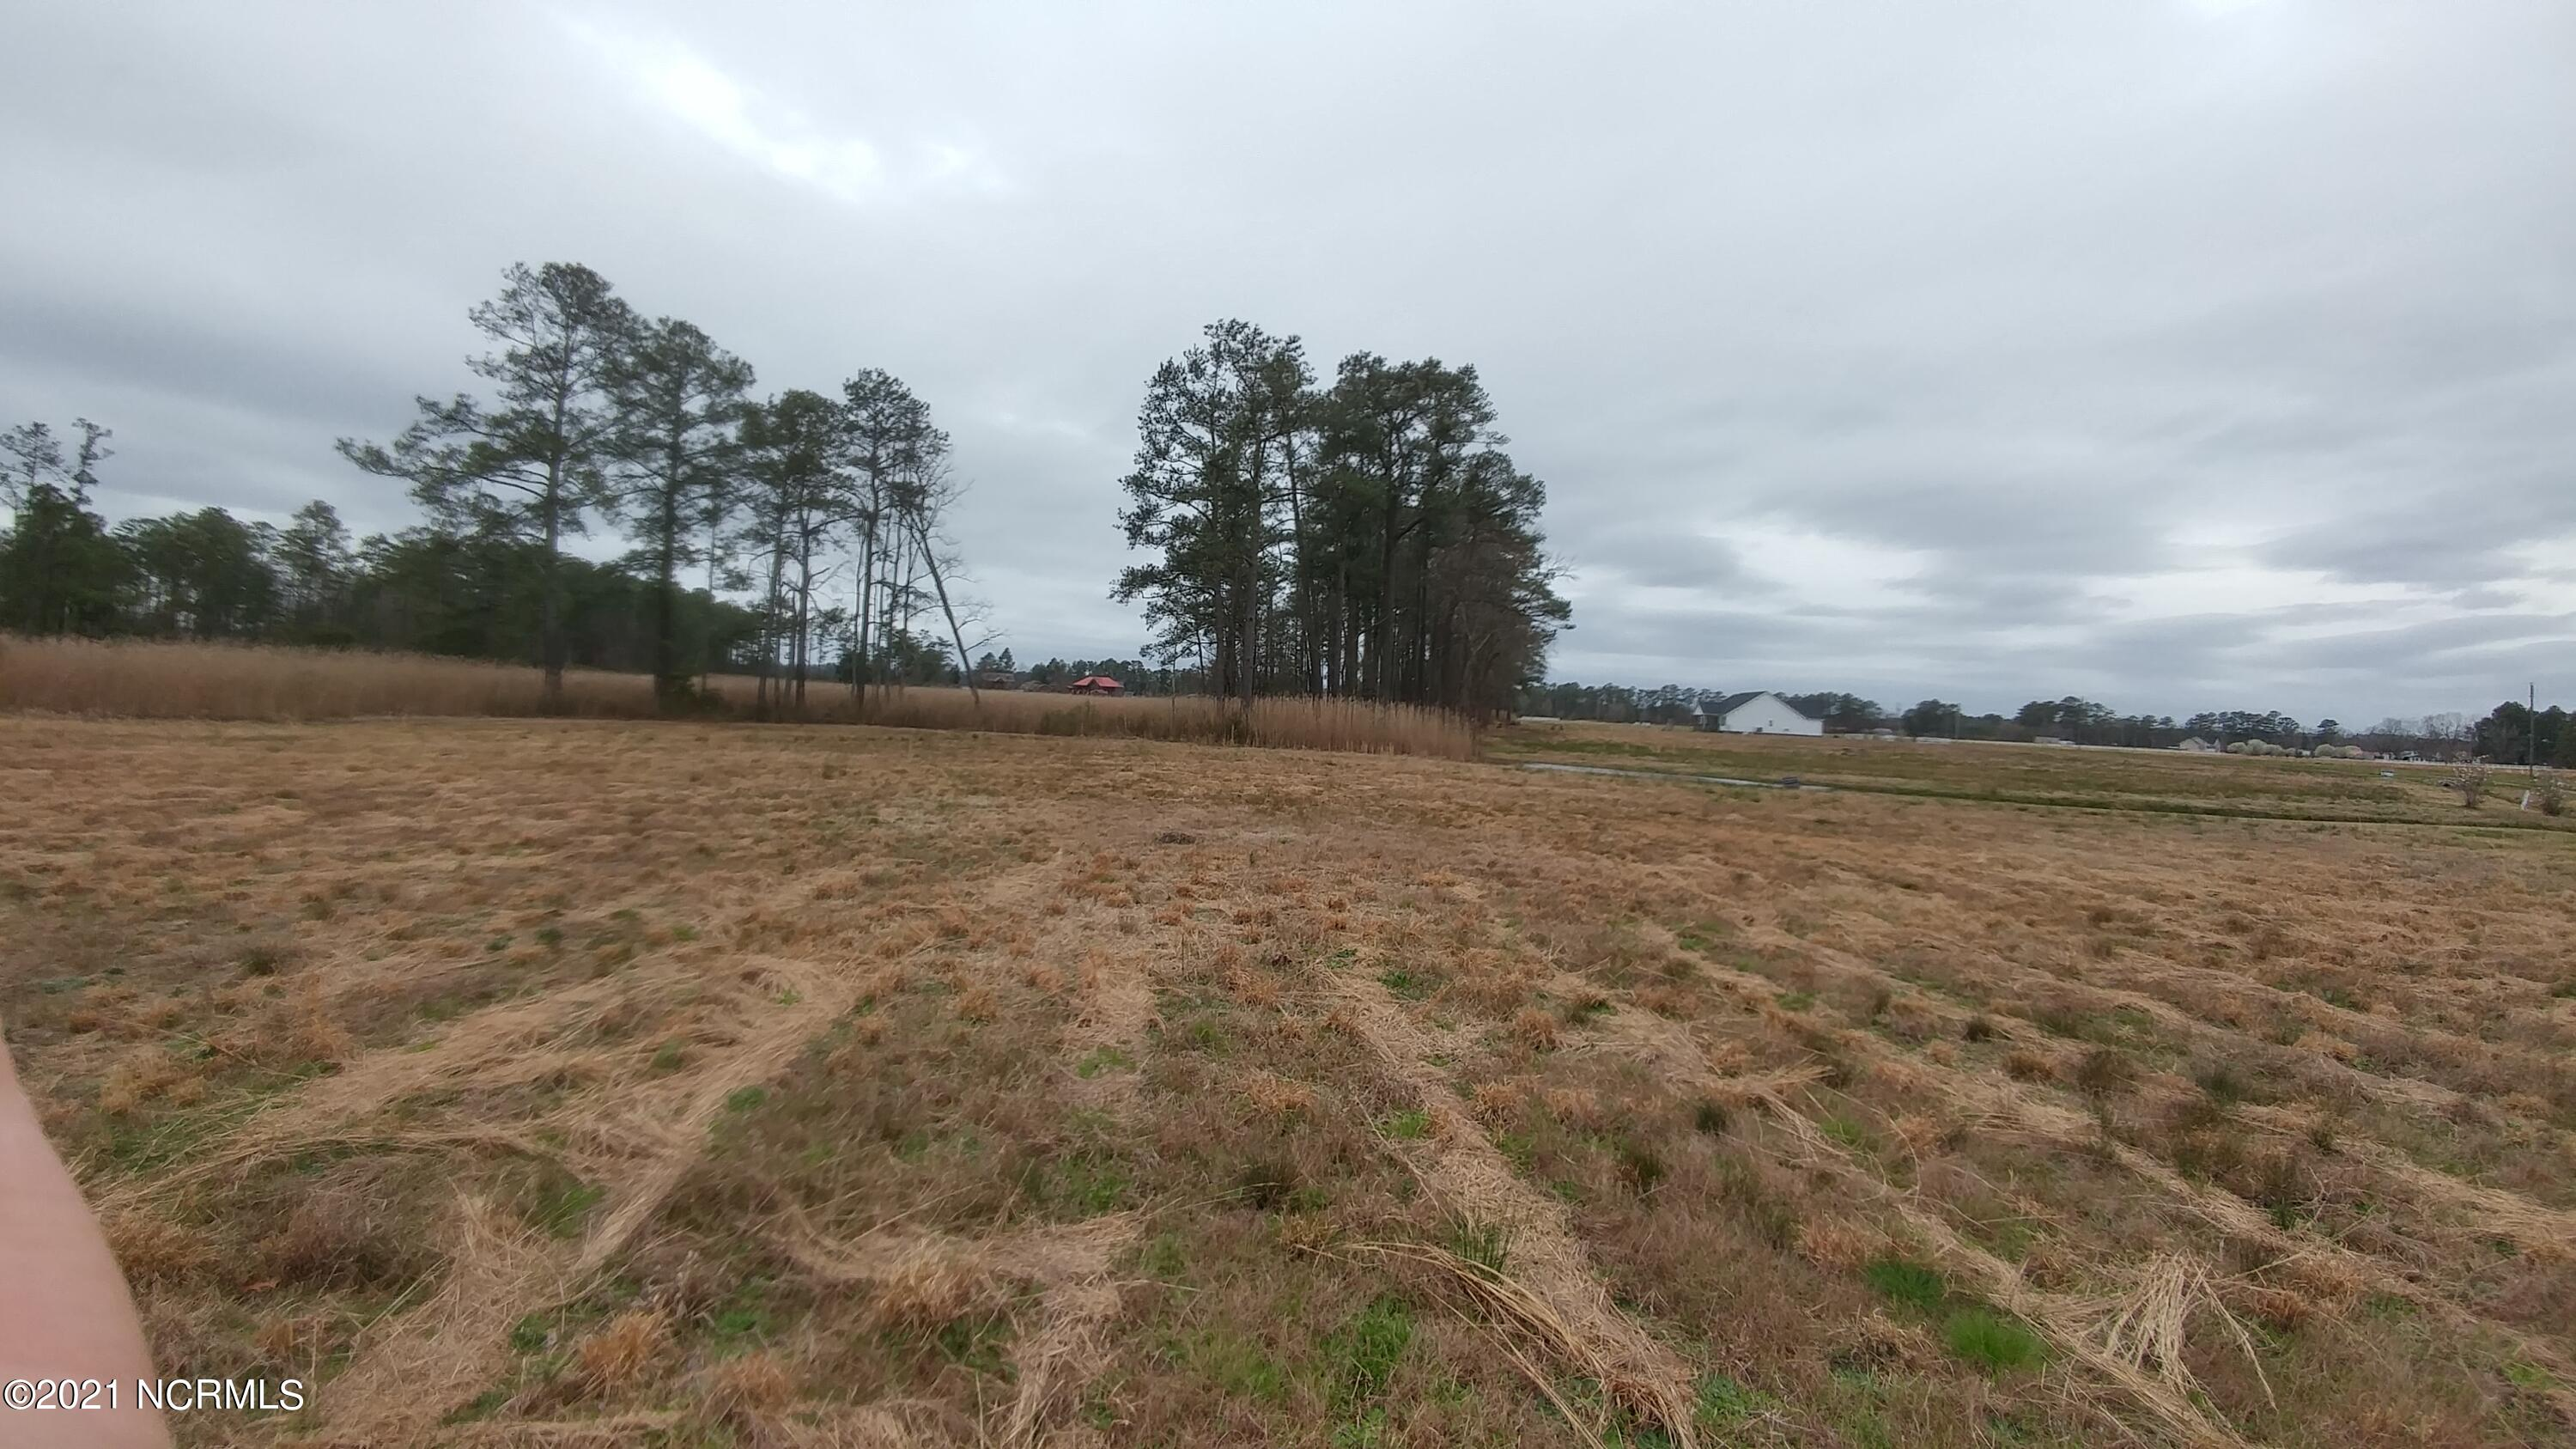 61 North Pointe Drive, Belhaven, North Carolina 27810, ,Residential land,For sale,North Pointe,100262517